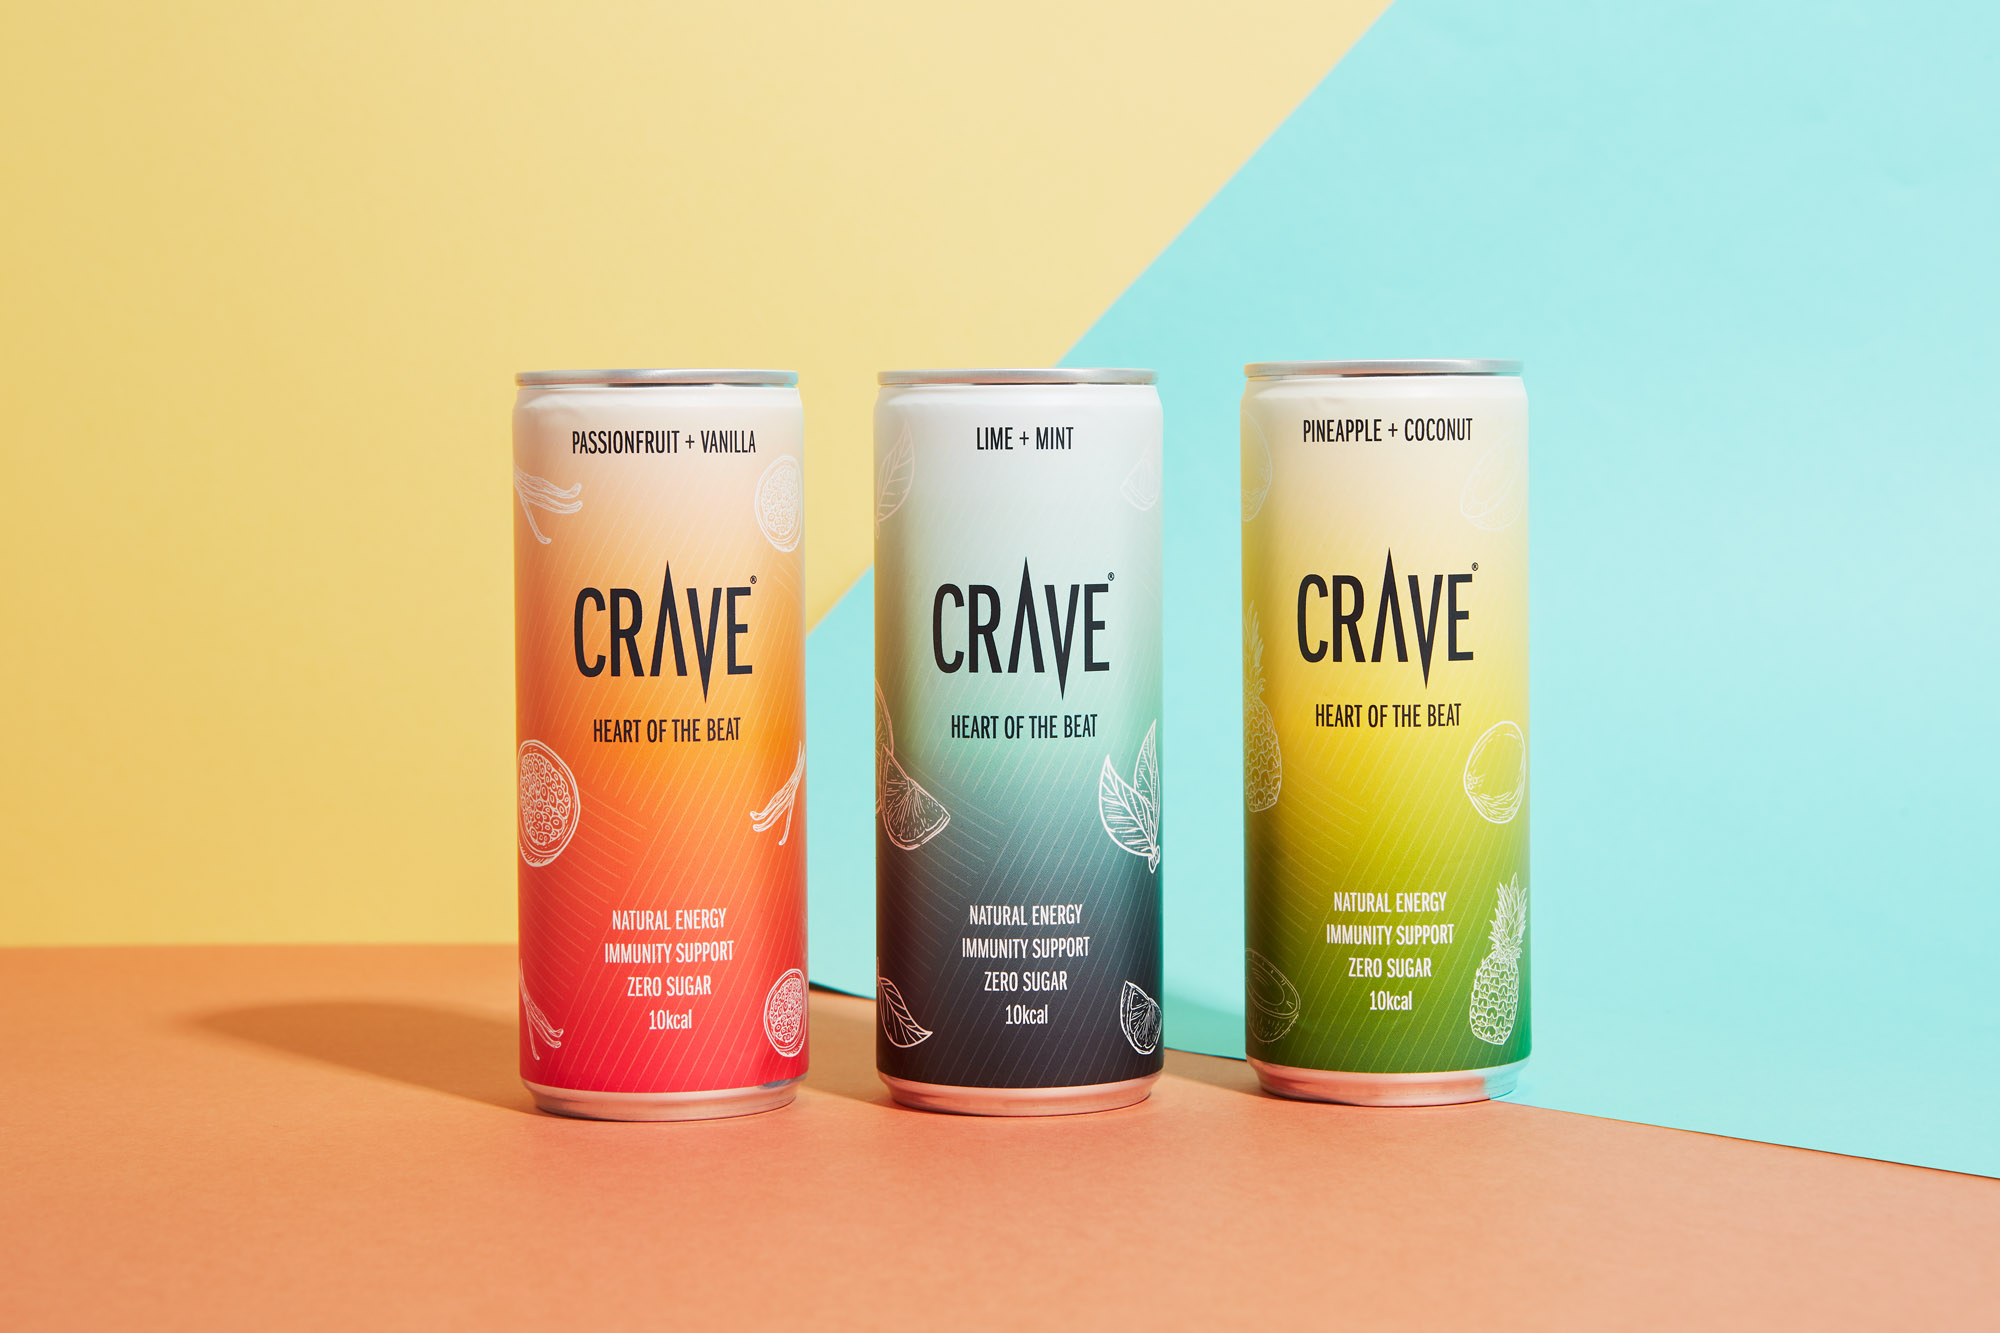 Studio Up North Develop Fresh Packaging Design for Crave's New Flavours